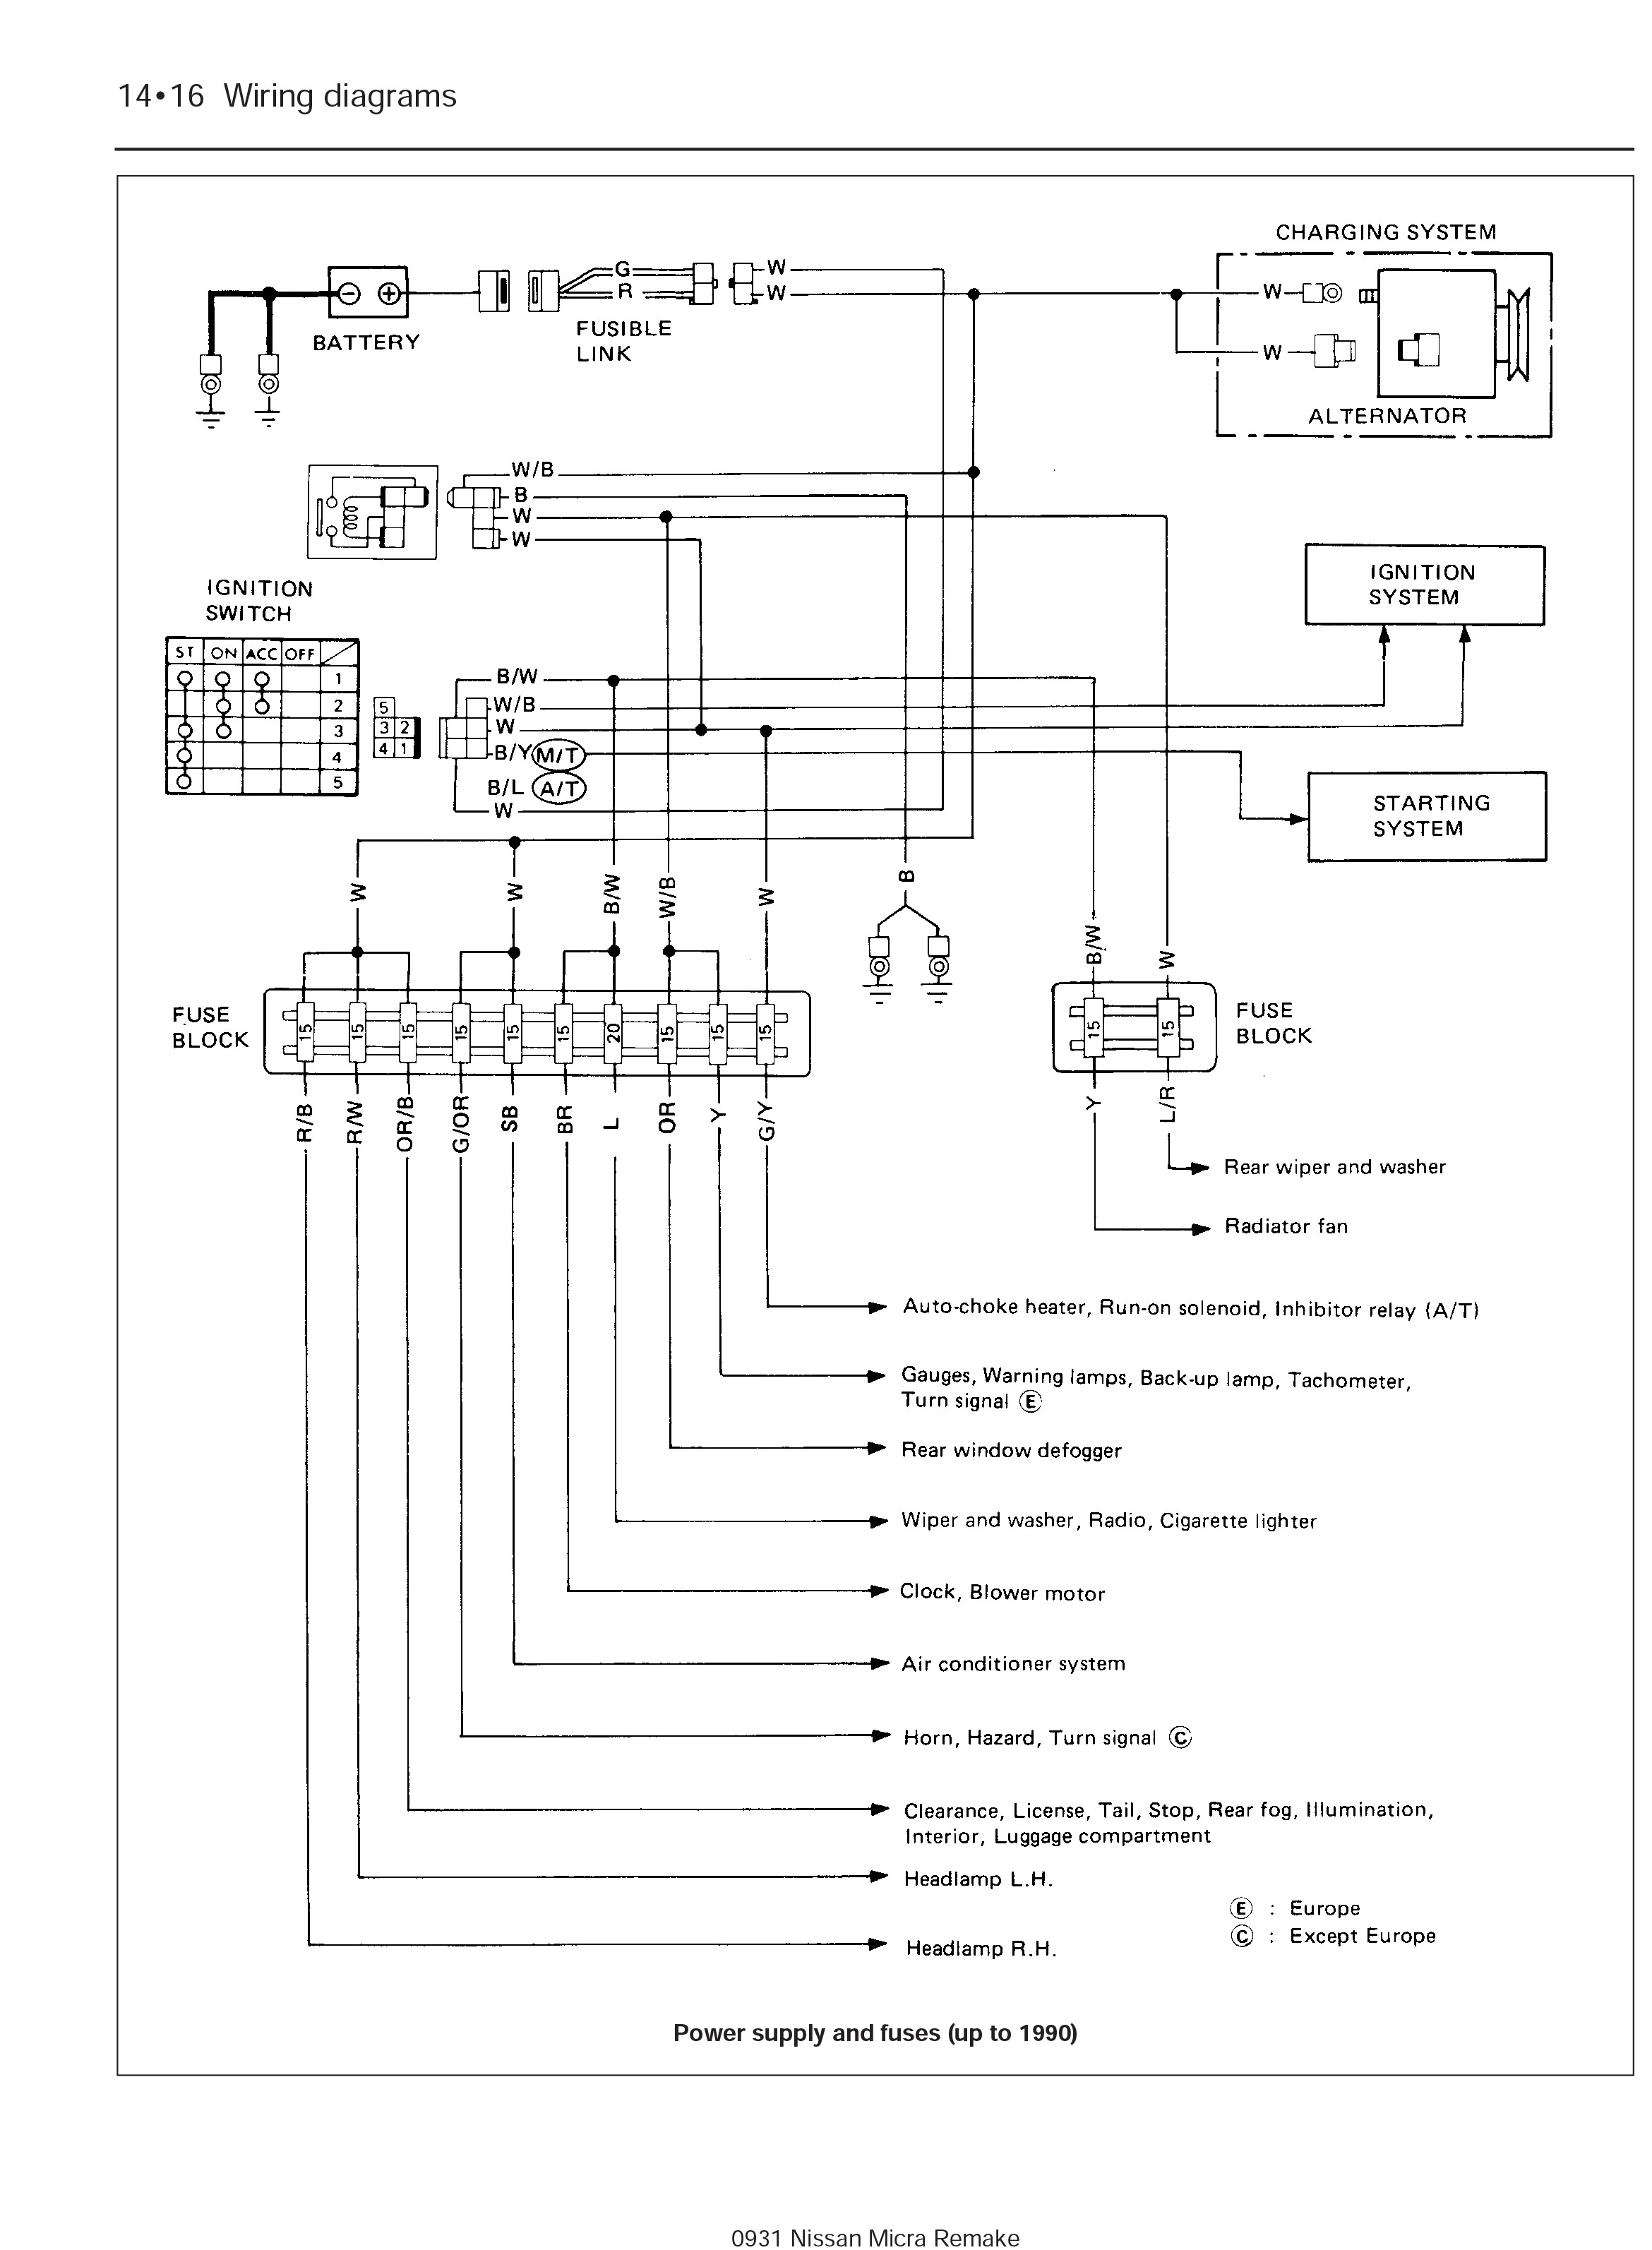 Gq patrol alternator wiring diagram peugeot 504 distributor wiring 3 nissan micra alternator wiring diagram haynes 0931 page 6 nissan micra alternator wiring diagramhtml asfbconference2016 Image collections